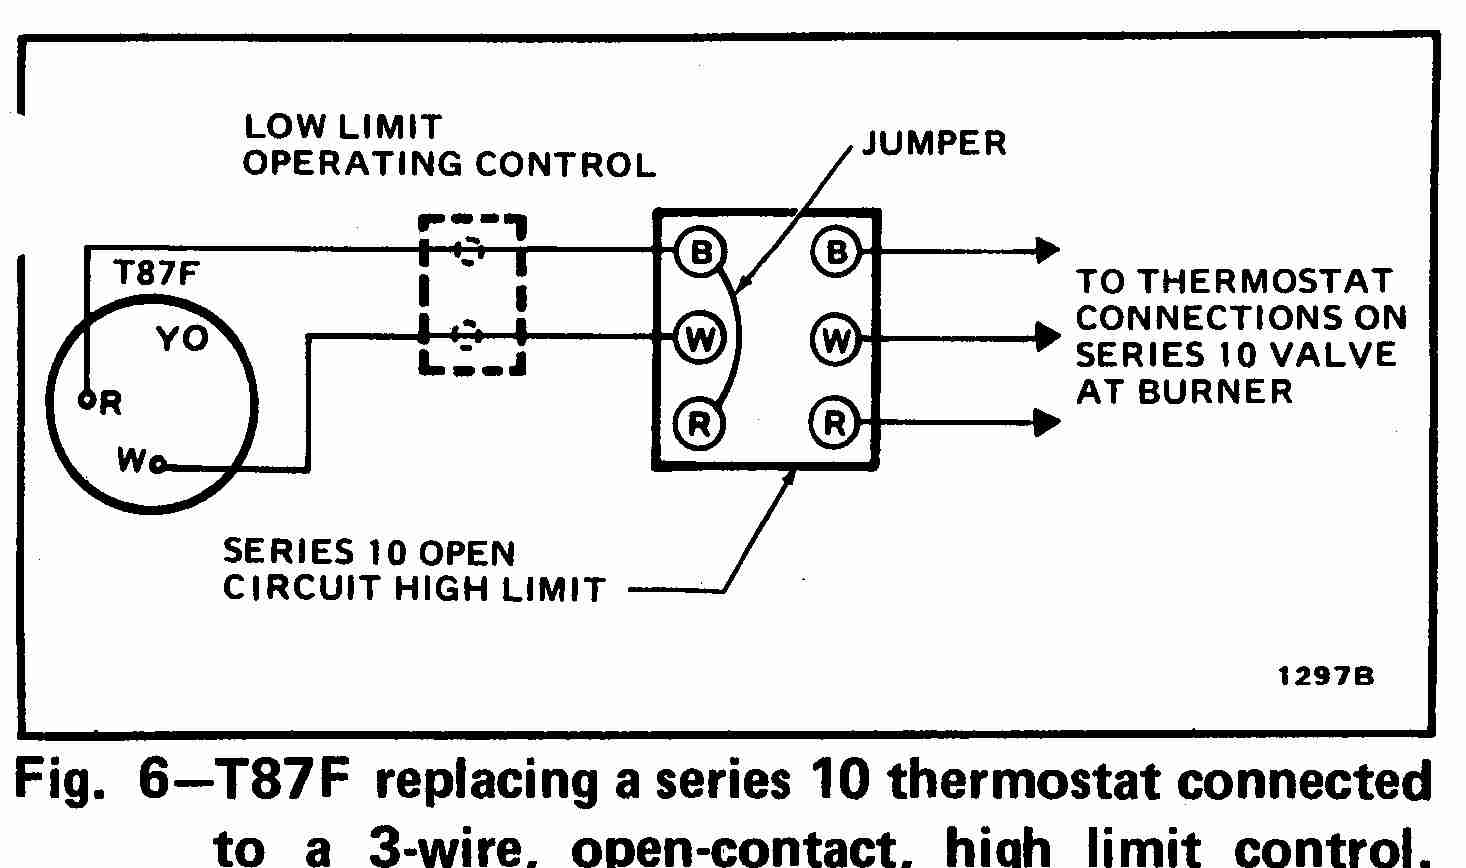 Peerless Boiler Wiring Diagram | Best Wiring Library - Cyclegard Wiring Diagram Nest